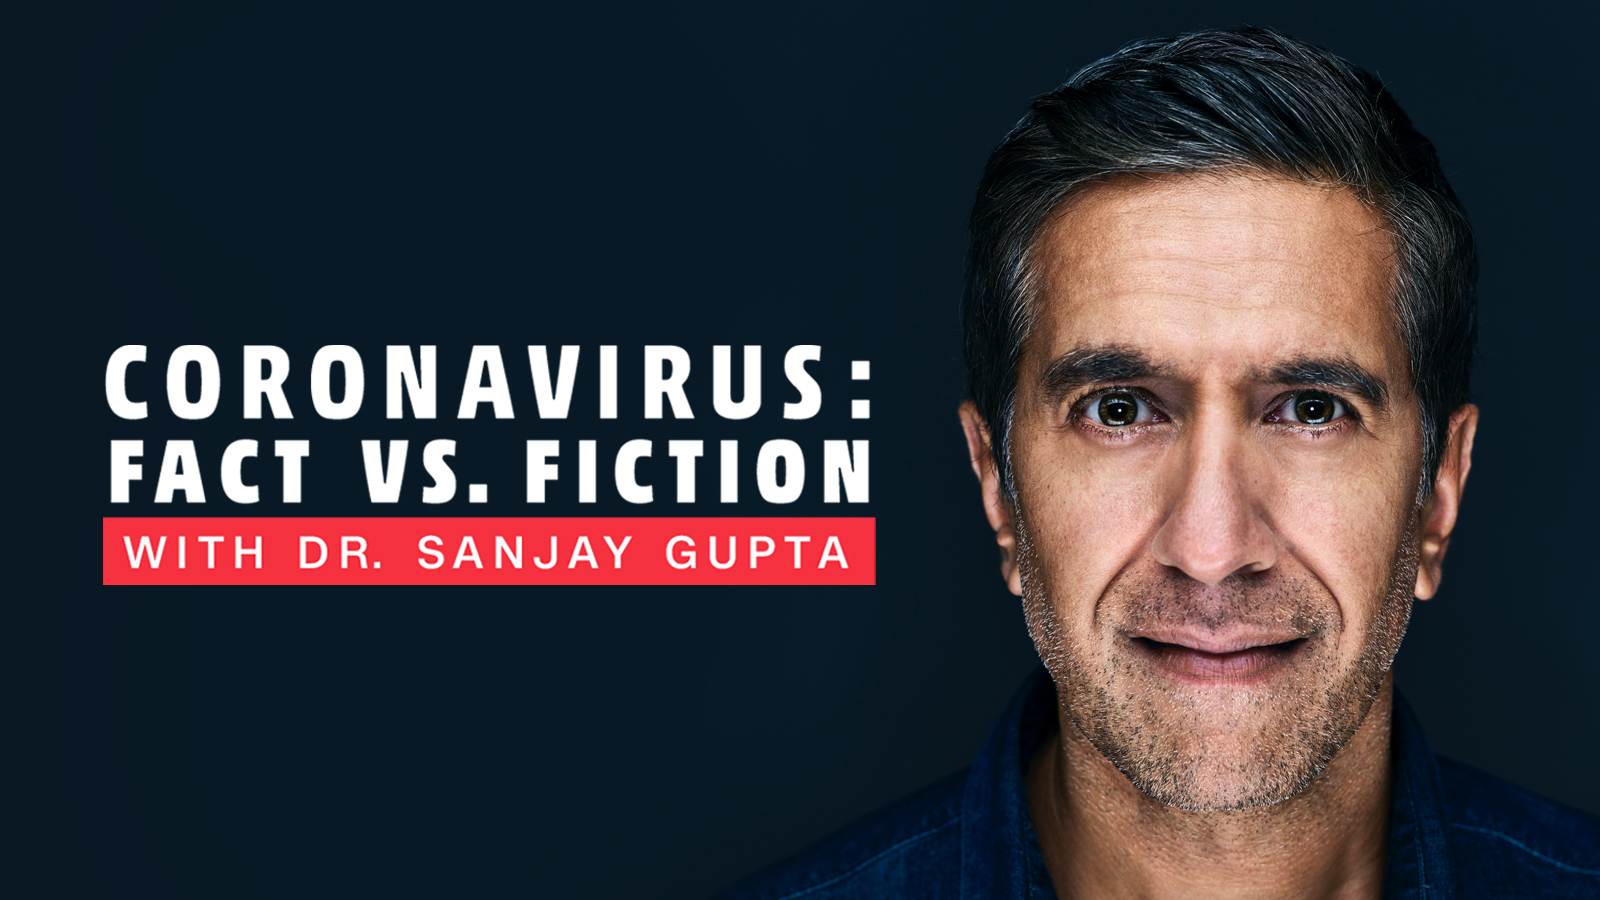 Two Viruses: Dr. Sanjay Gupta's coronavirus podcast for June 5